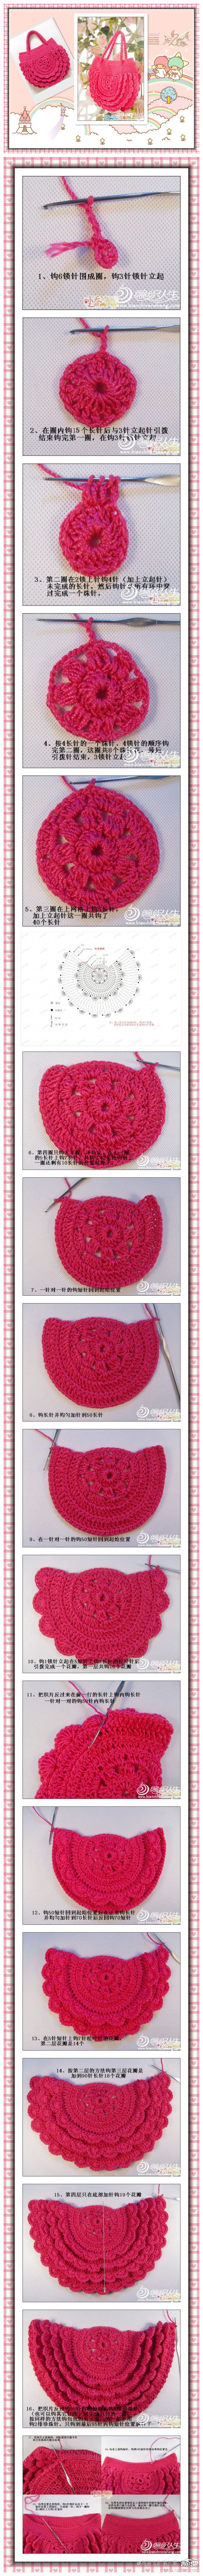 crochet bag tutorial!